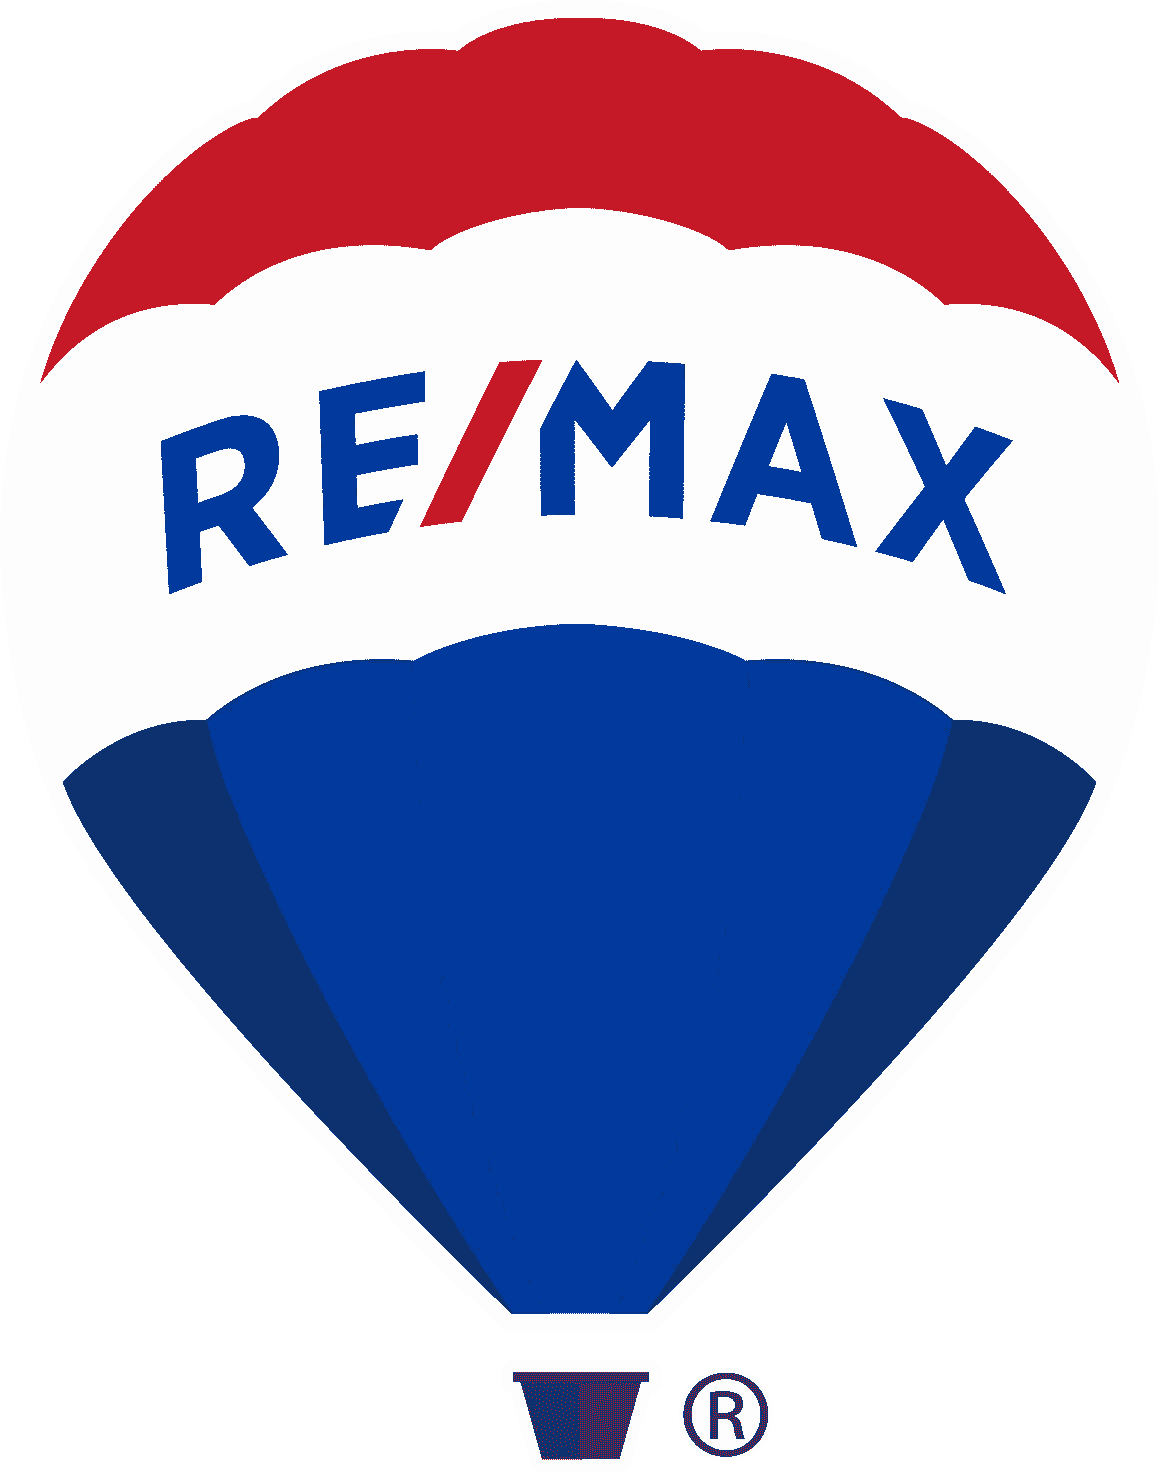 An icon of a hot air balloon signifying the official logo of RE/MAX® headquartered in Colorado.